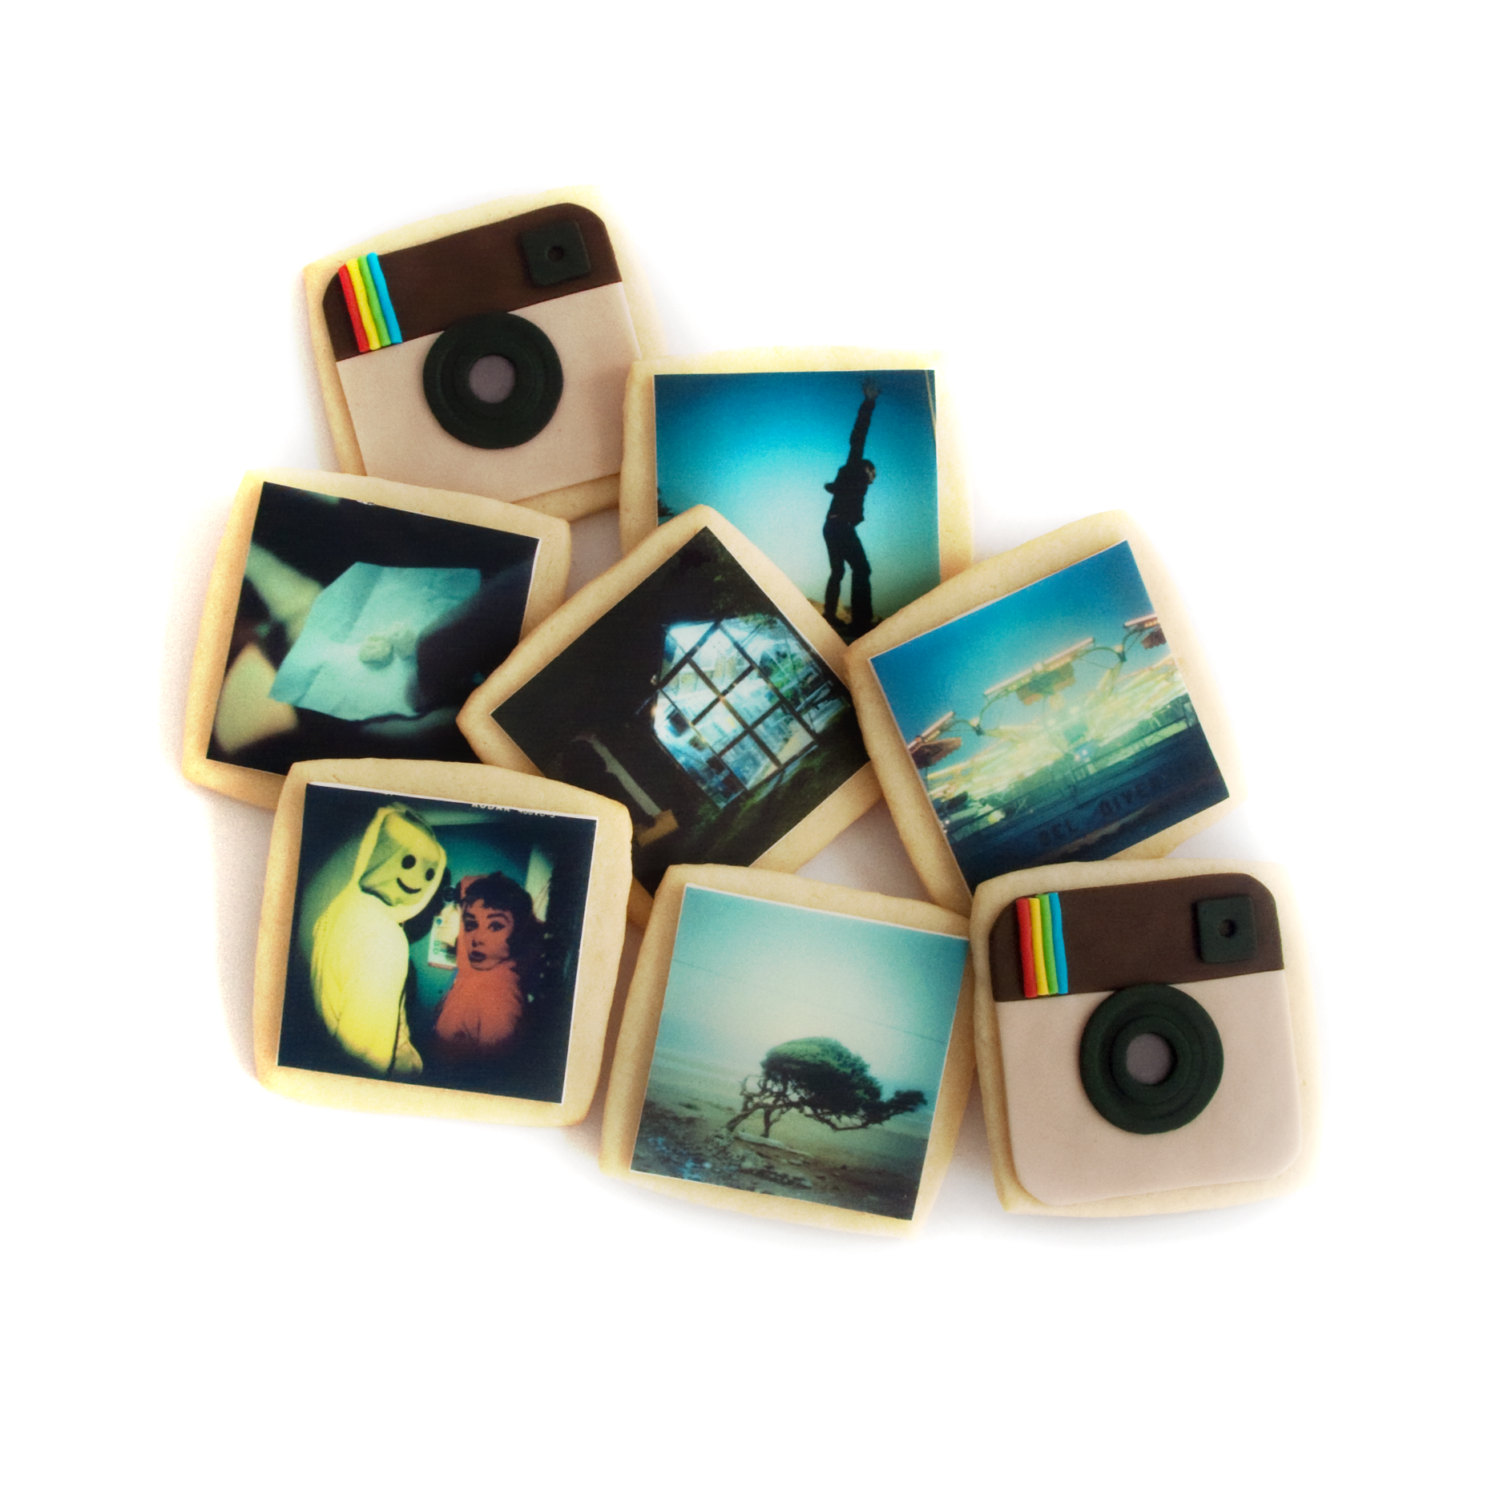 Instagram photo gifts get tasty with custom cookies